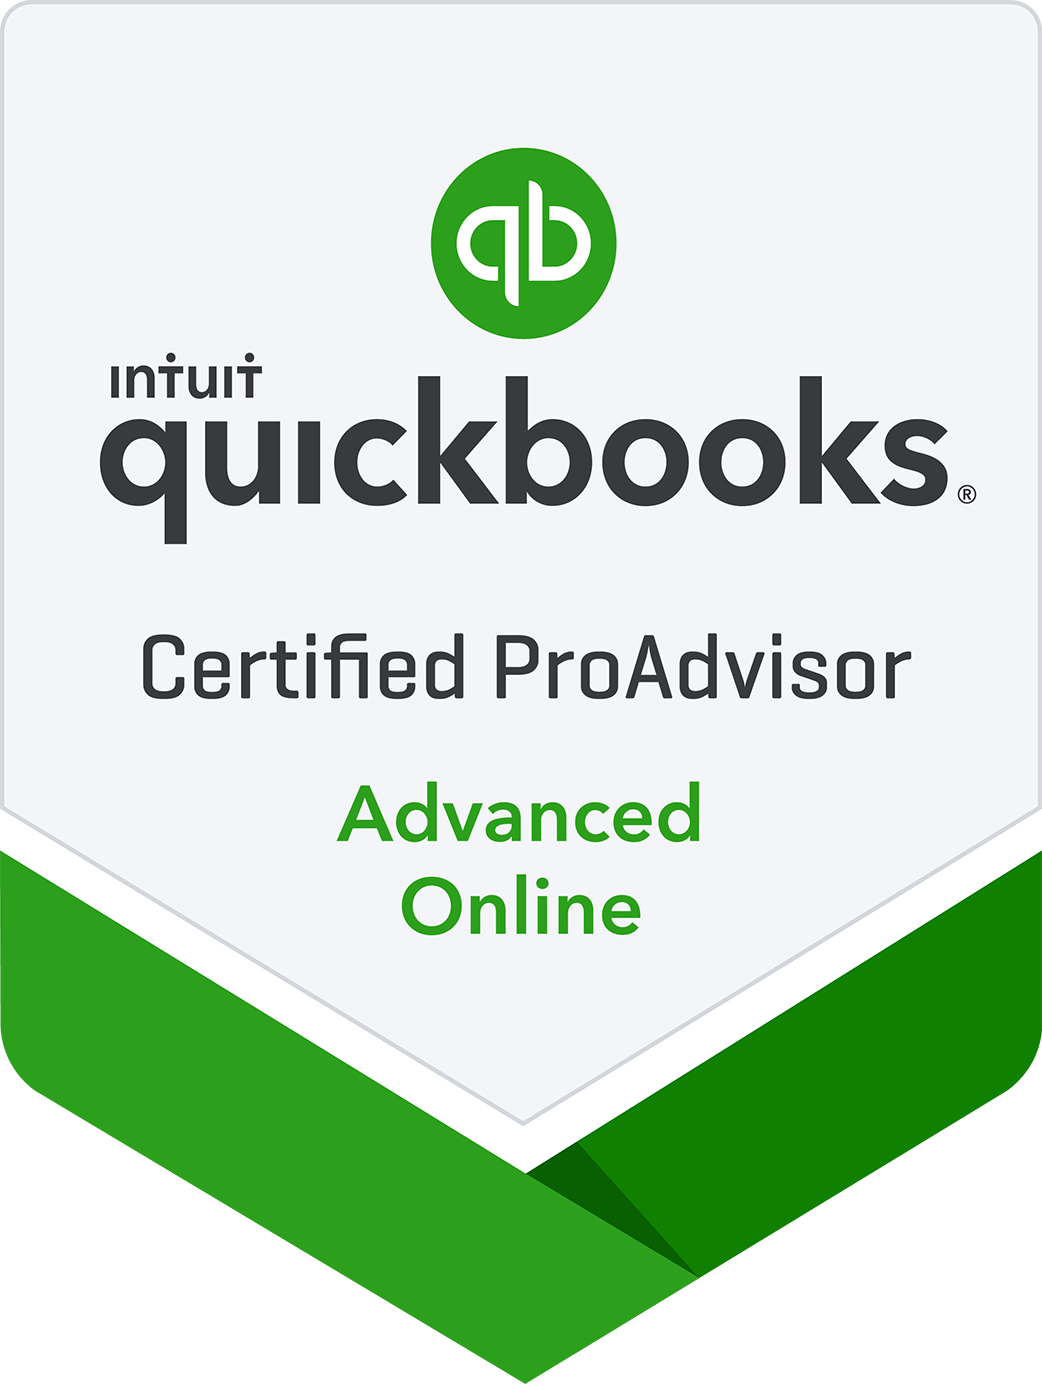 QuickBooks Advanced Online Certification